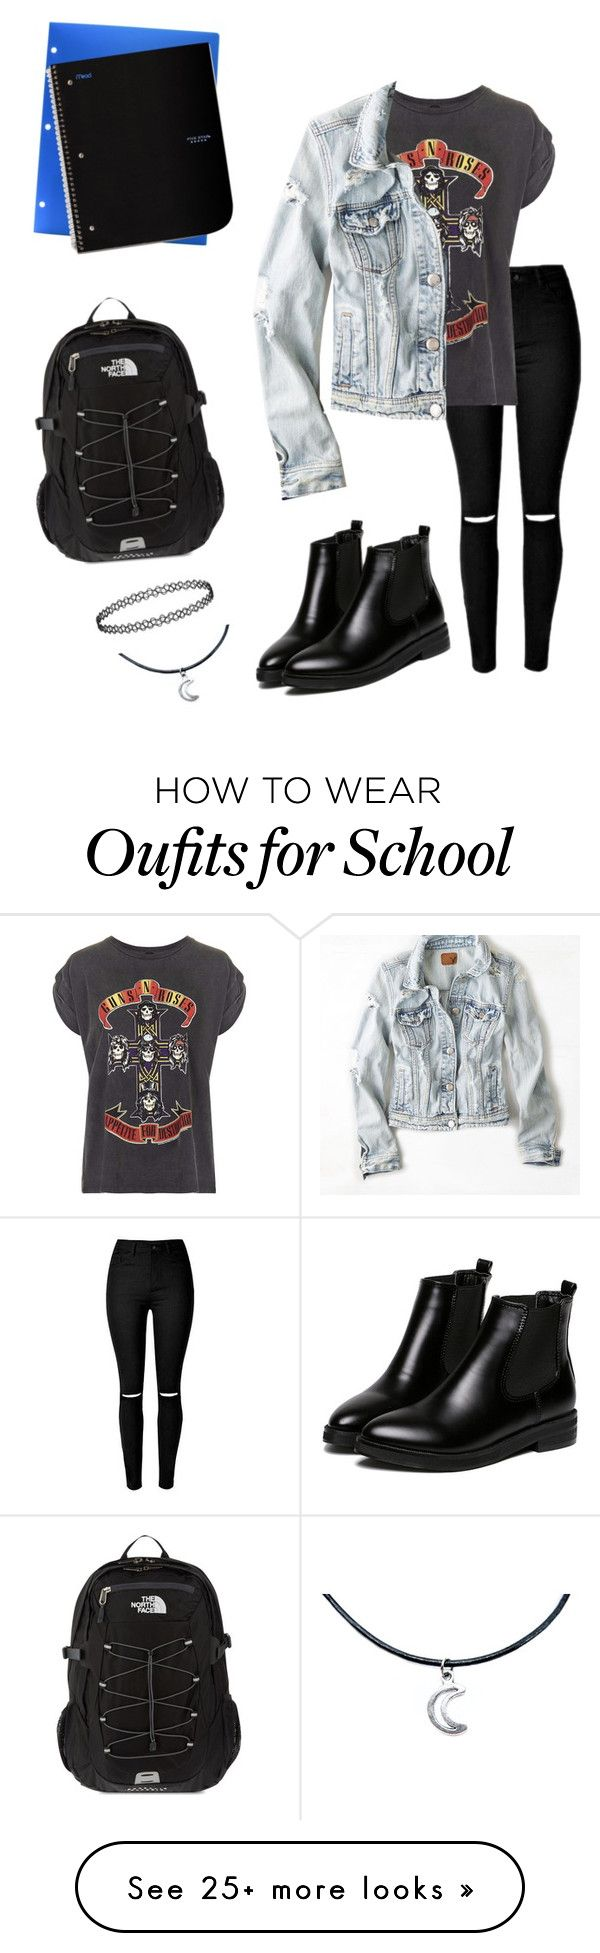 """4 - Day at School"" by alilrose on Polyvore featuring Topshop, American Eagle Outfitters, WithChic and The North Face"